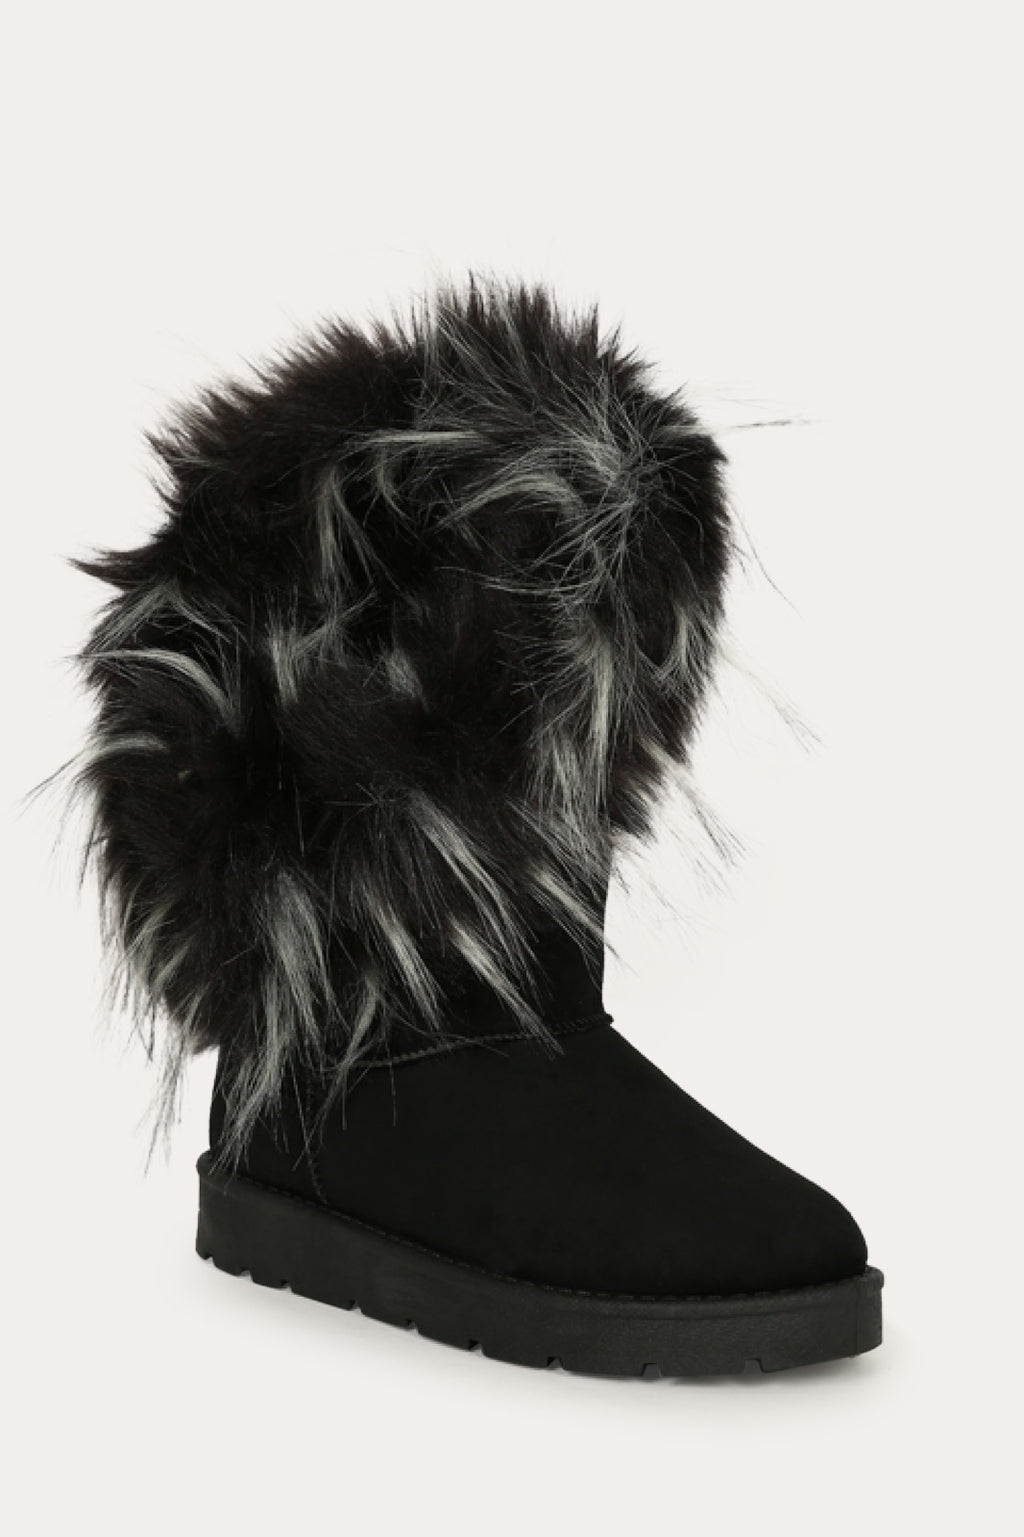 Bamboo Frozen-01 Black Round Toe Asymmetrical Fur Boots